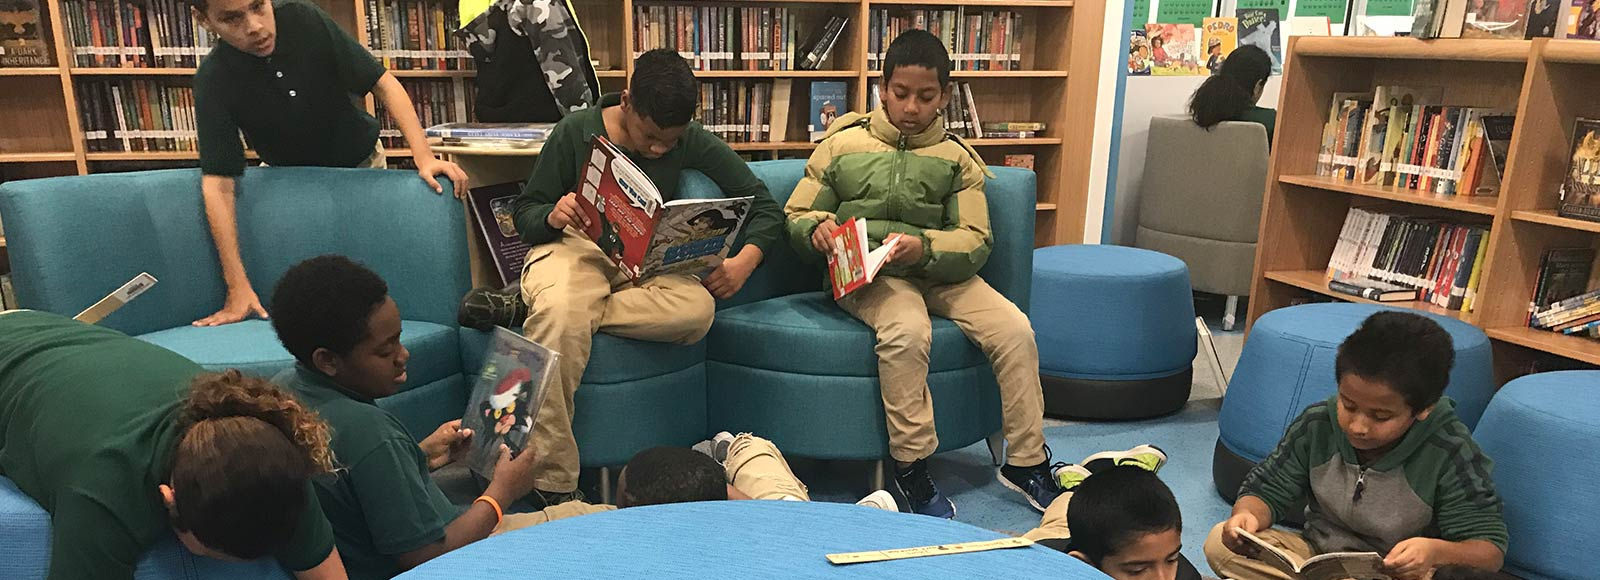 Marie Reed Elementary School Students reading